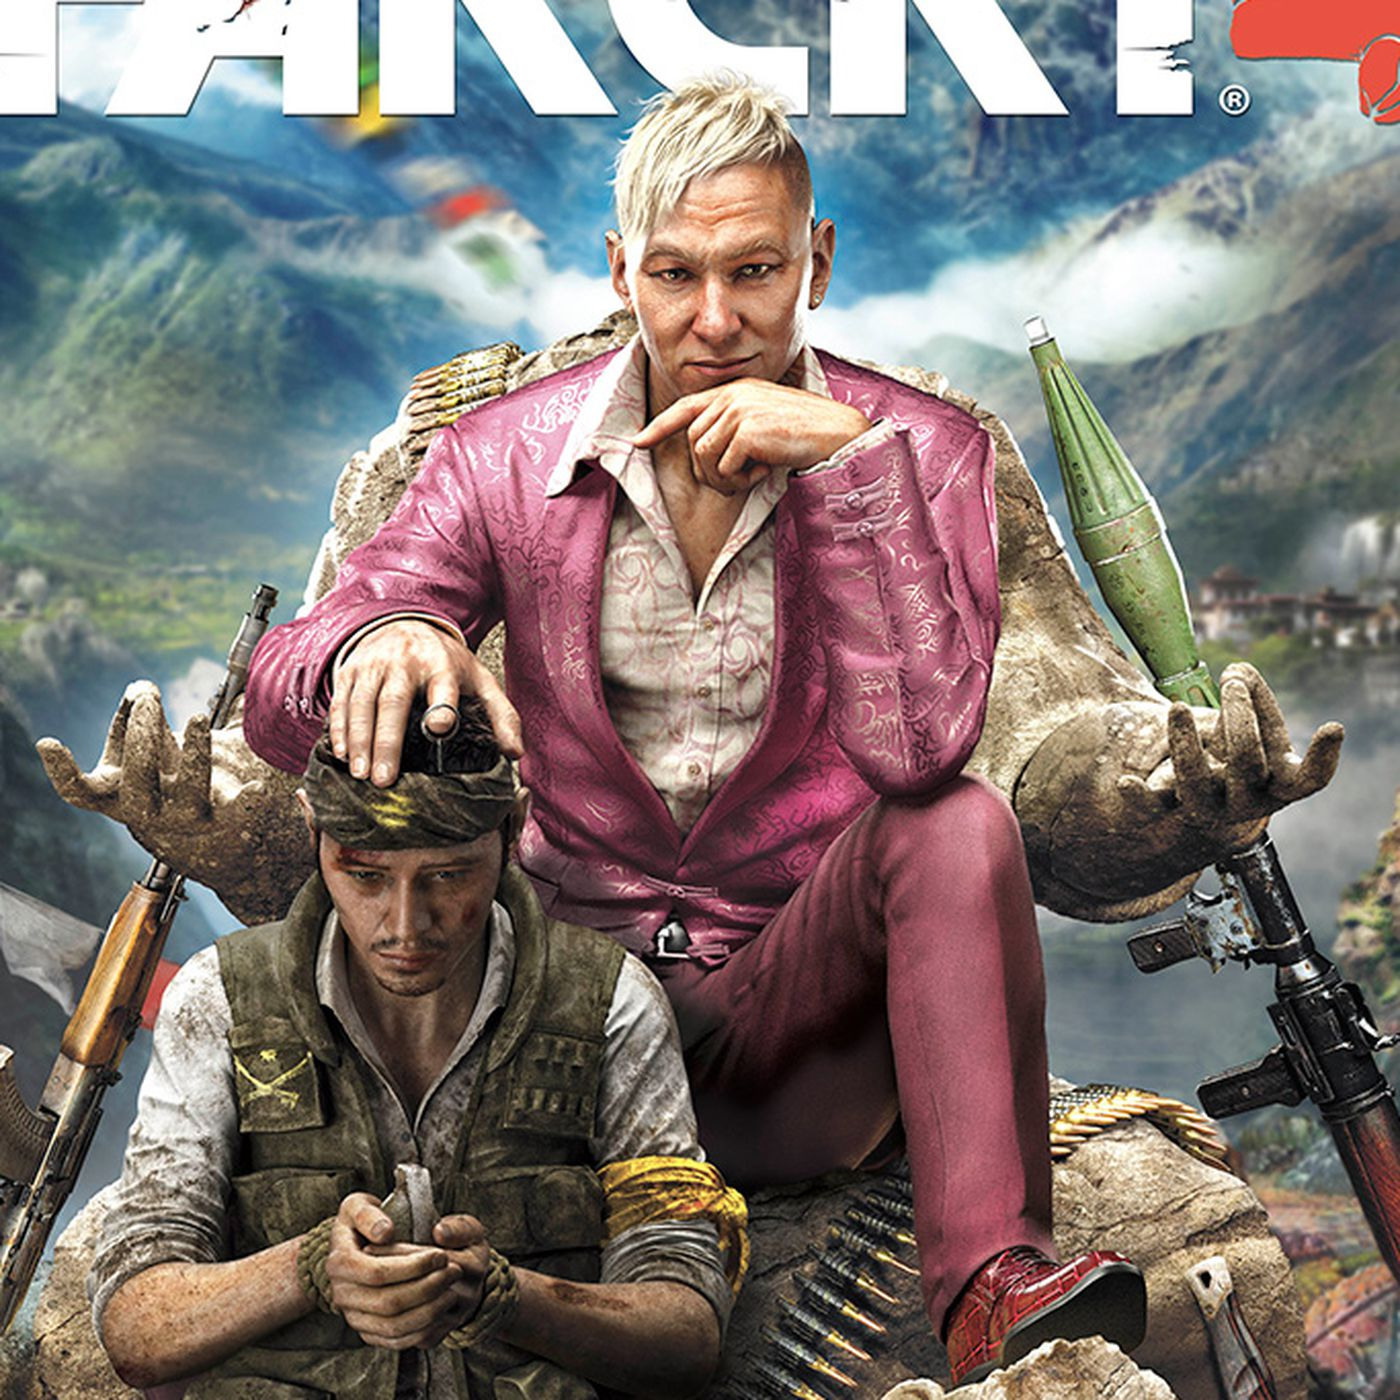 Far Cry 4 Coming Nov 18 On Ps3 Ps4 Pc Xbox 360 Xbox One Polygon